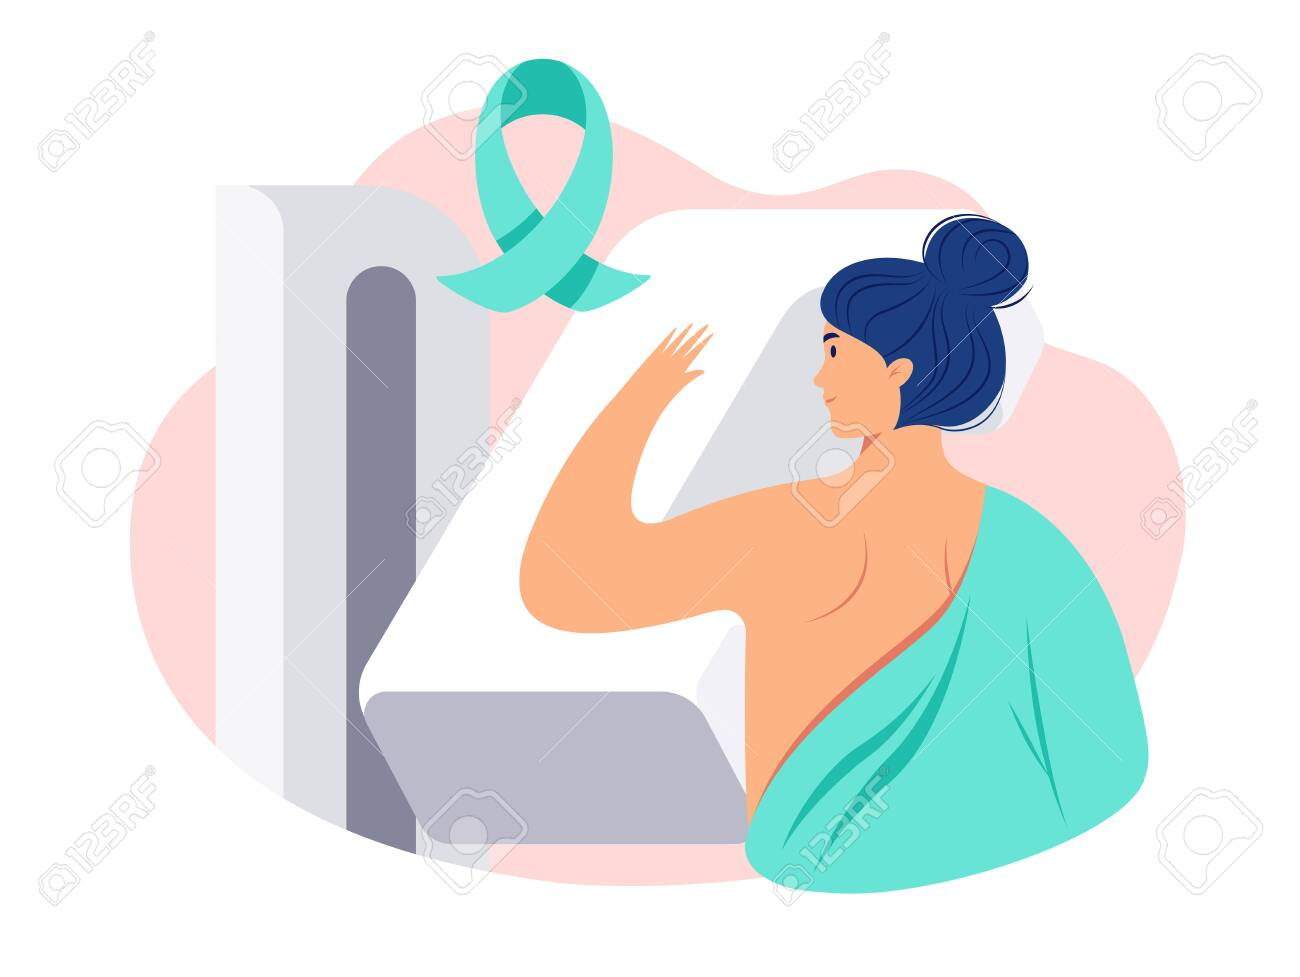 Breast cancer awareness vector illustration. Woman patient getting a mammogram. Breast diagnosis, medical diagnostic equipment, cancer awareness ribbon - 153308636